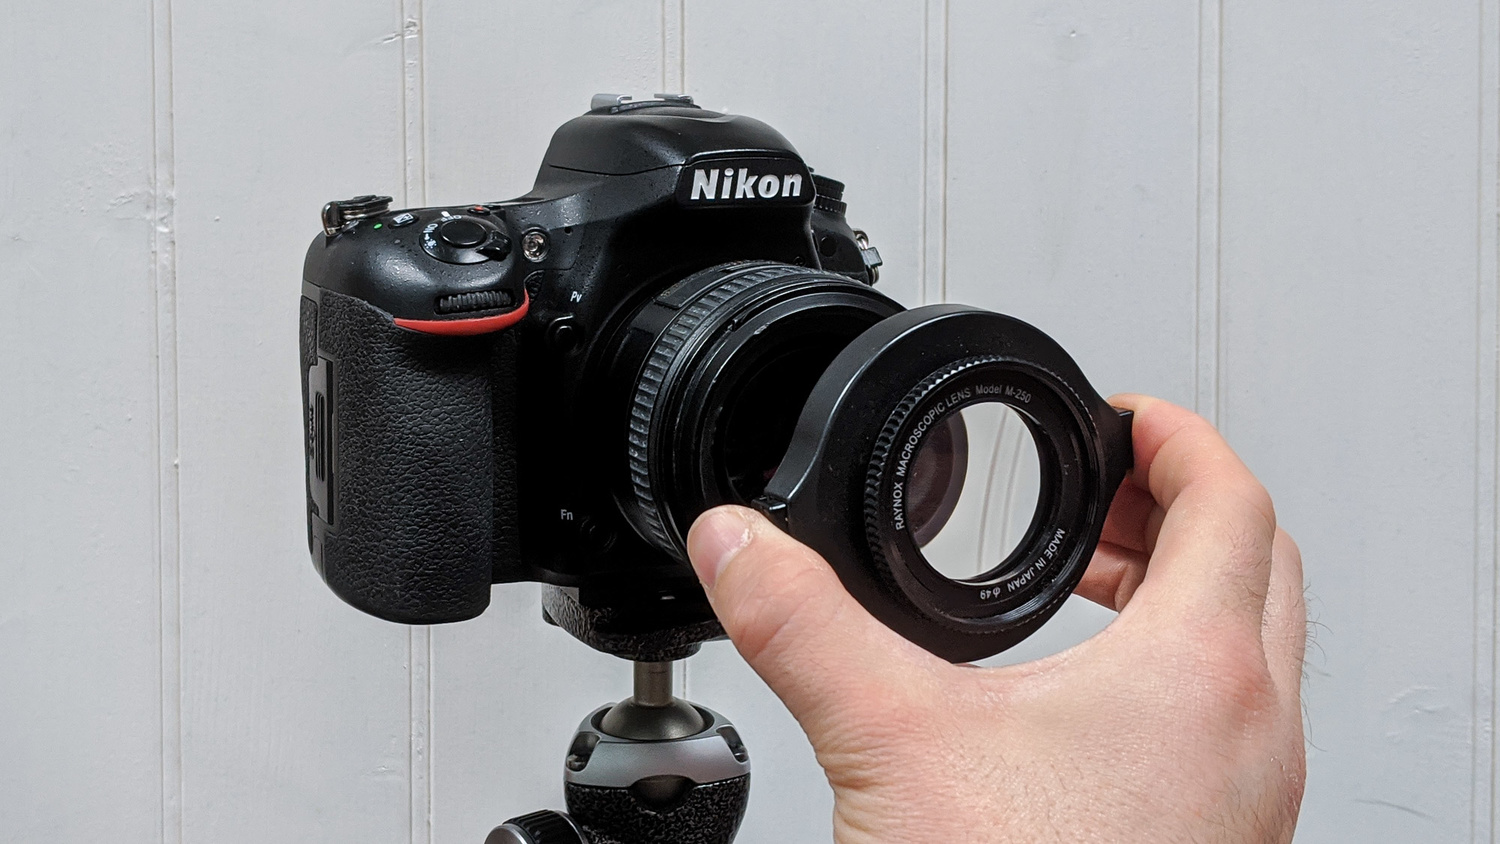 A filter for close-up photography